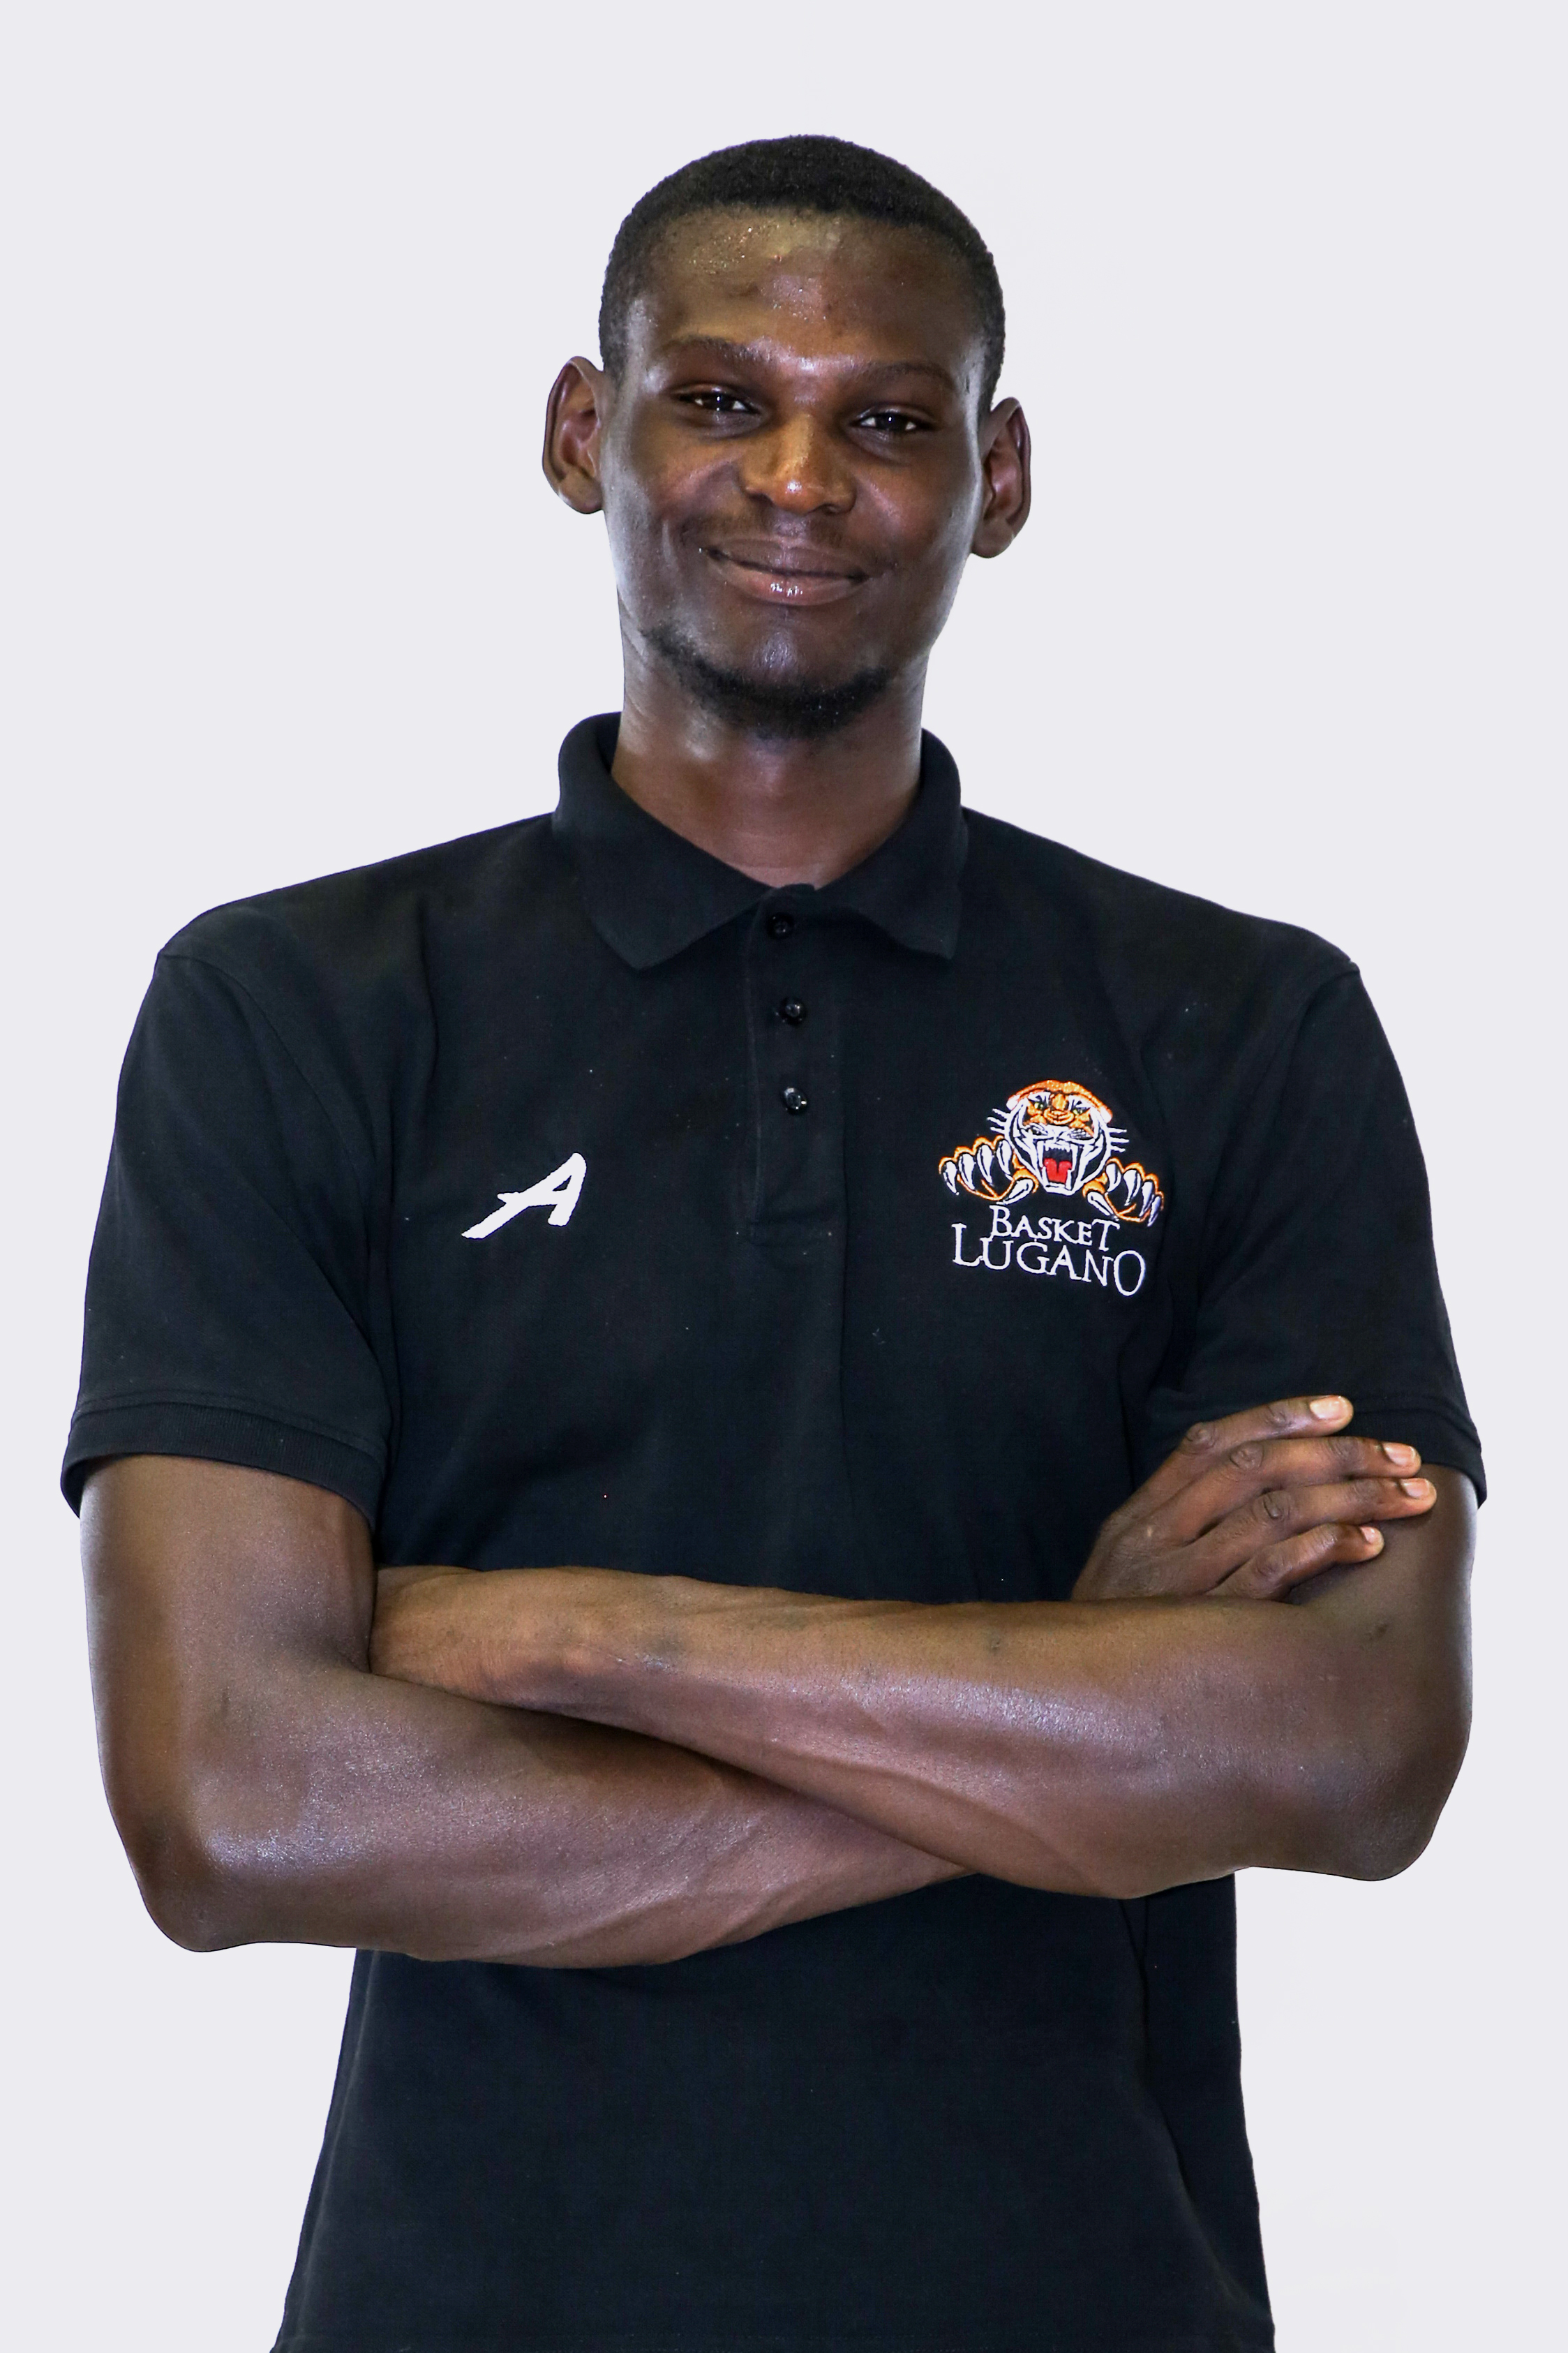 https://www.basketlugano.com/wp-content/uploads/2018/09/Fernando-Mussongo-20.05.1996.jpg